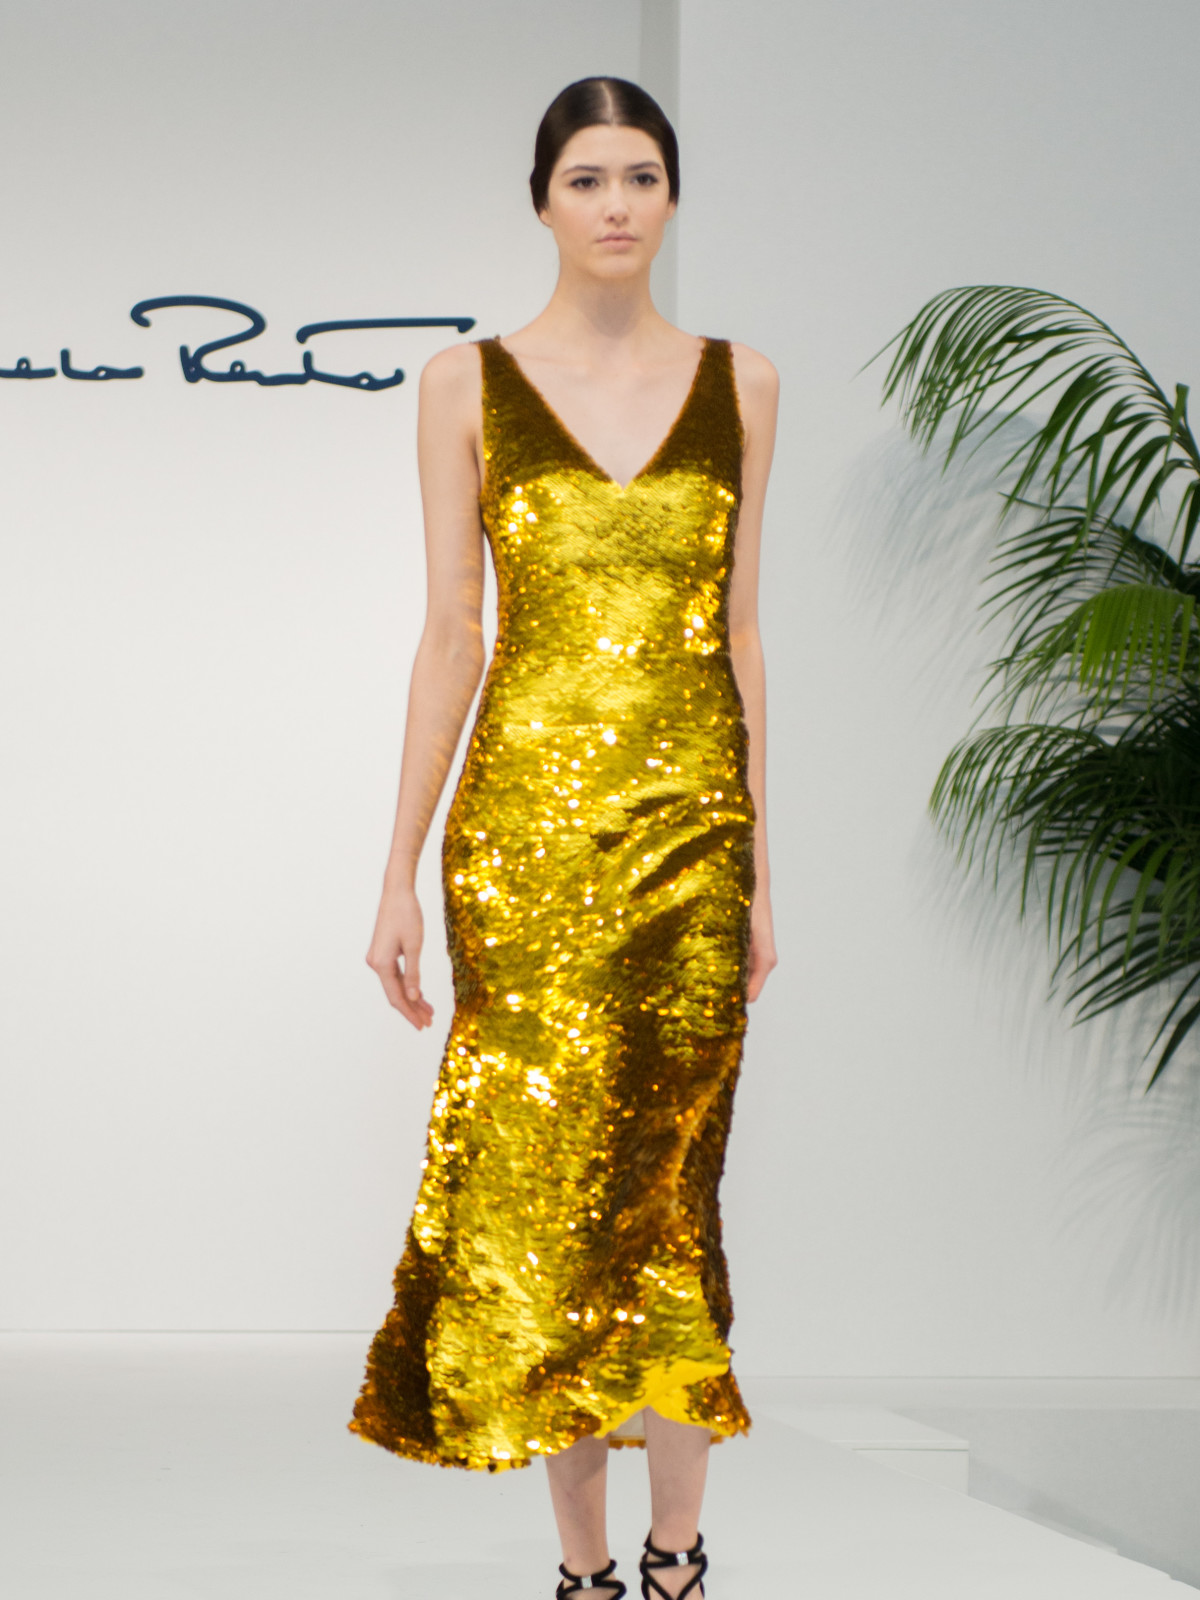 Oscar de la Renta 2018 resort collection gold gown